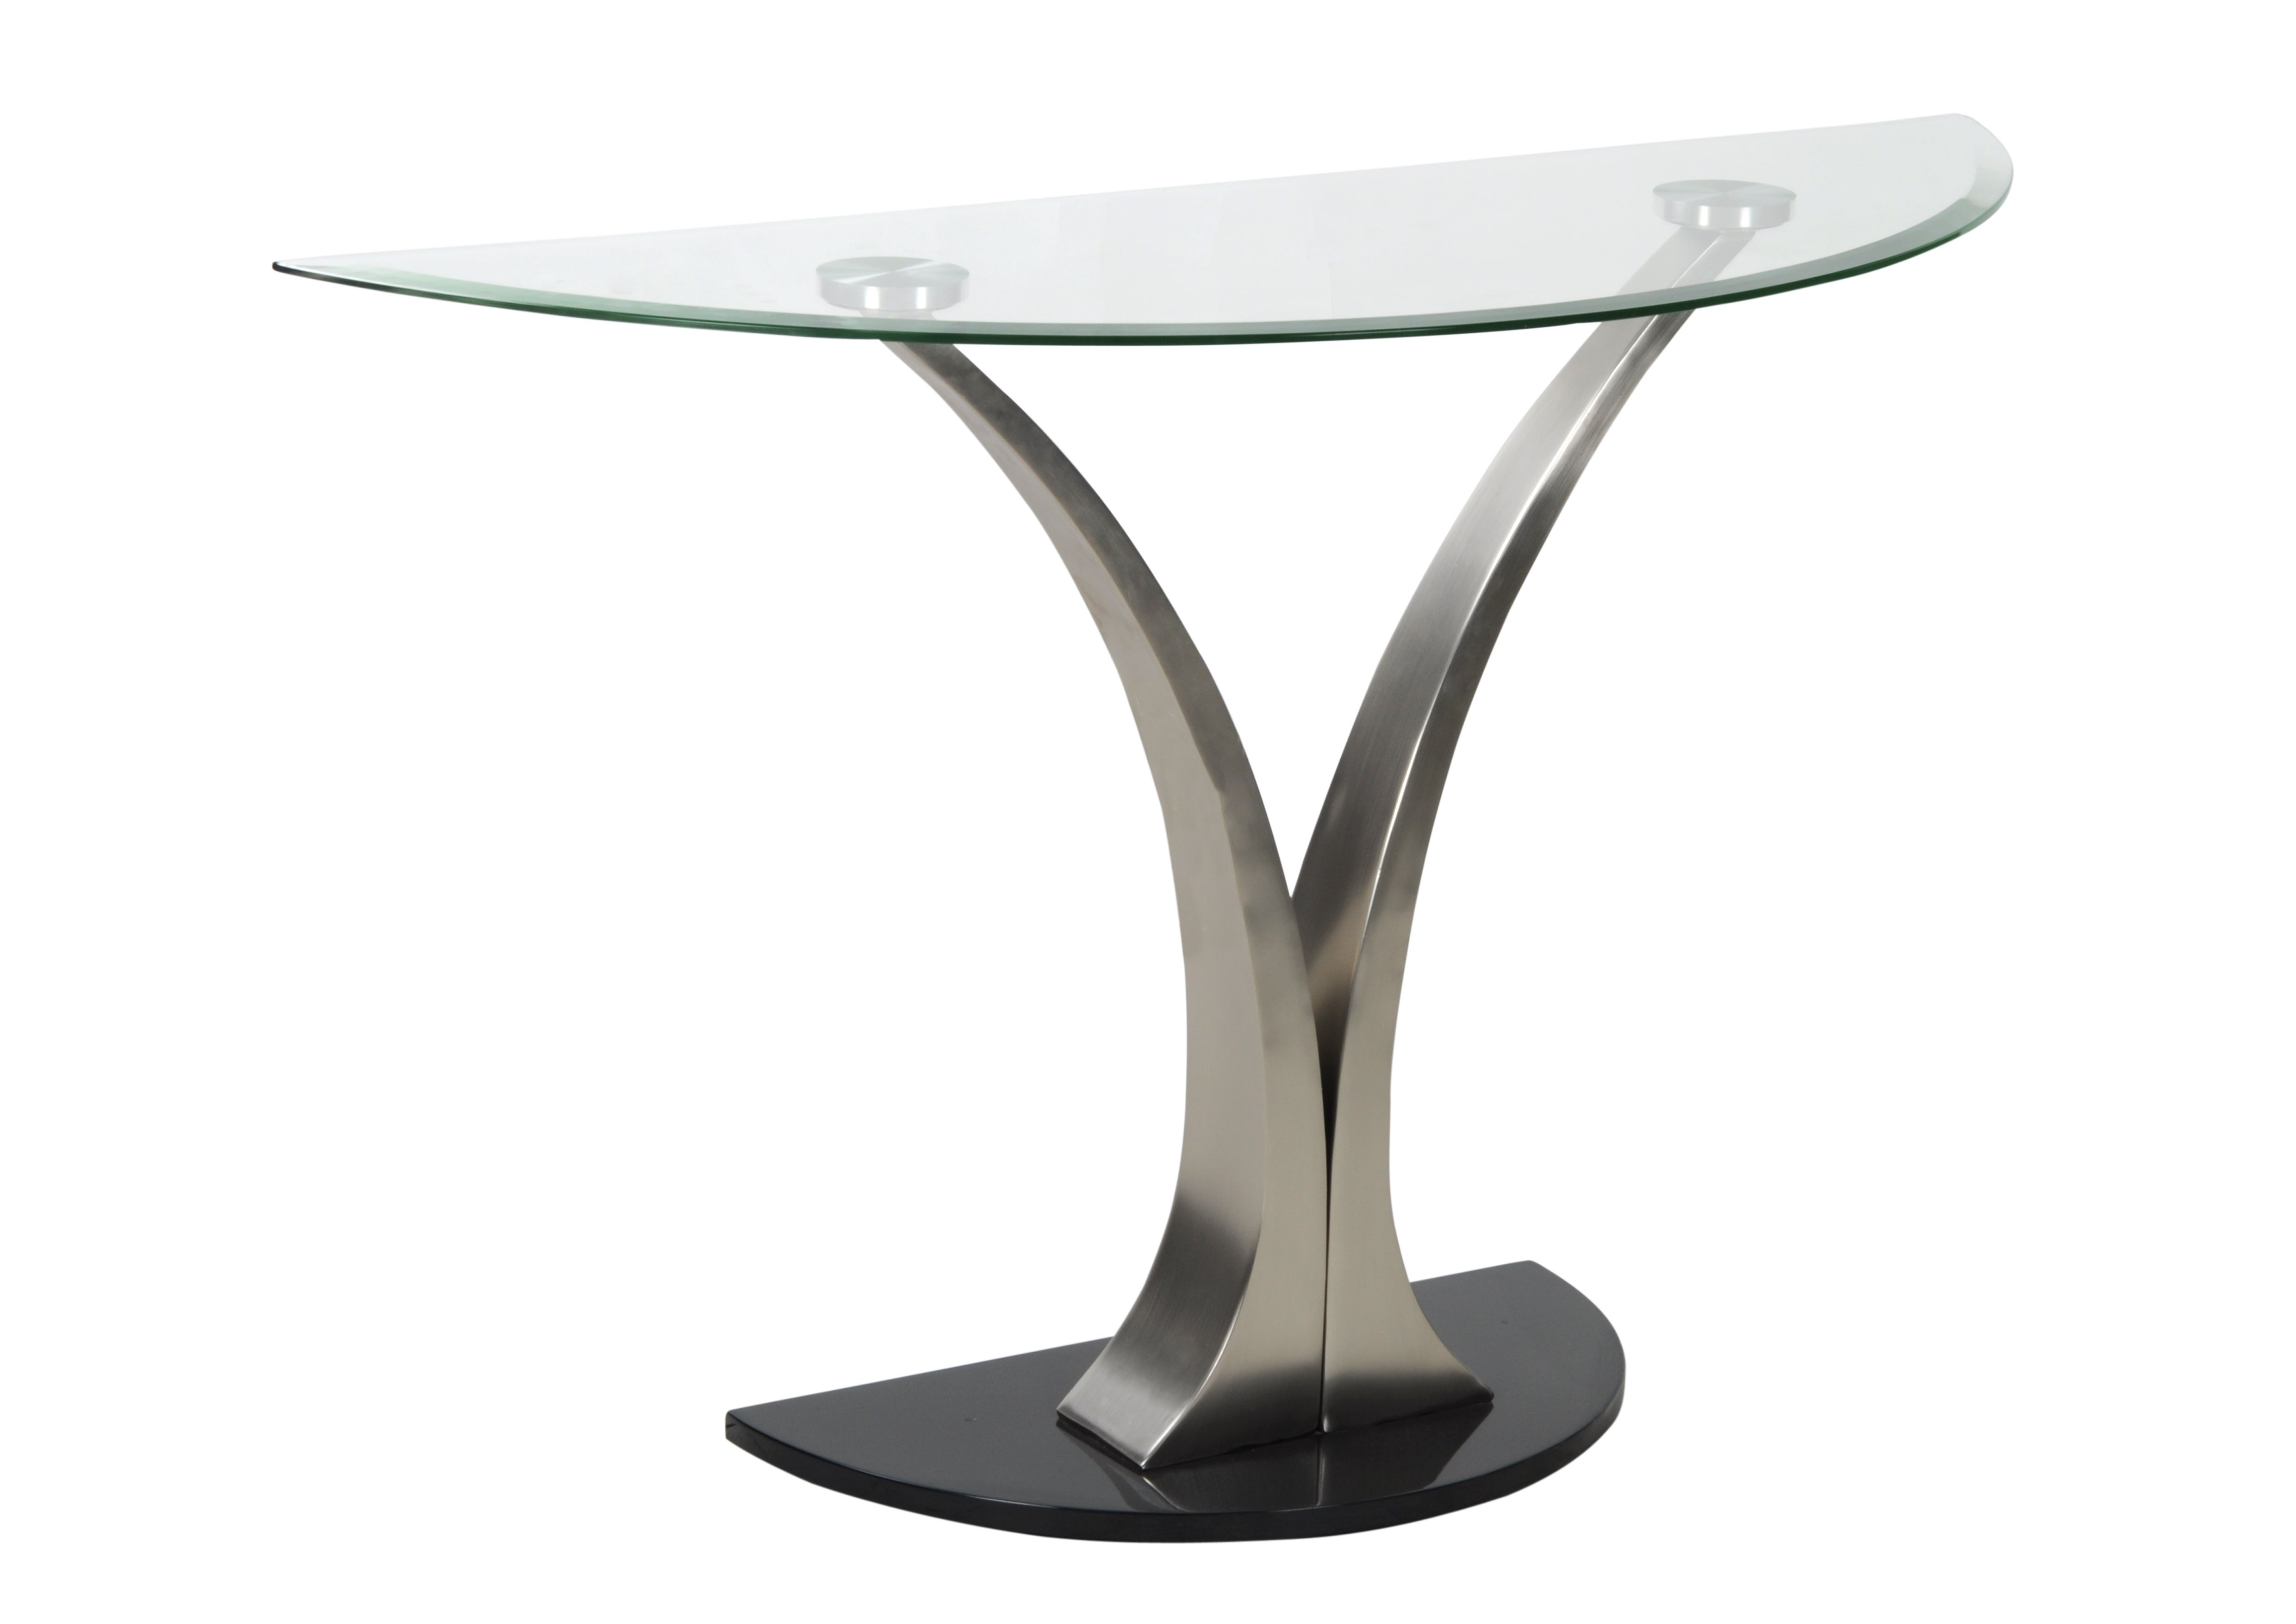 Amro Sofa Table With The Tusk Shaped Metallic Base And Semi Circular Solid Gl Top Arrests Feel Of Onlookers